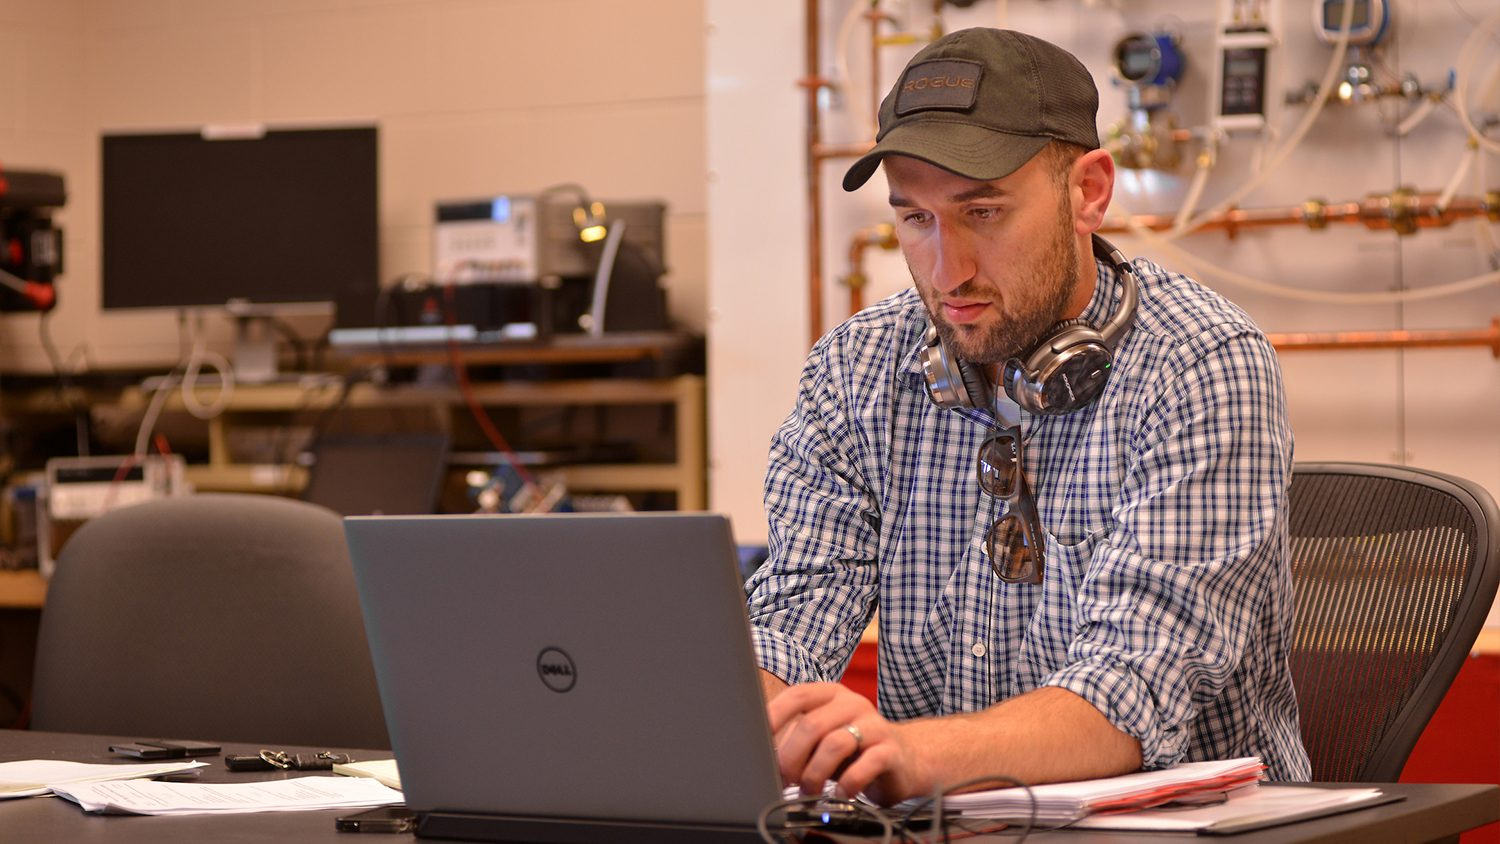 College of Engineering student works on an assignment at the Havelock campus.